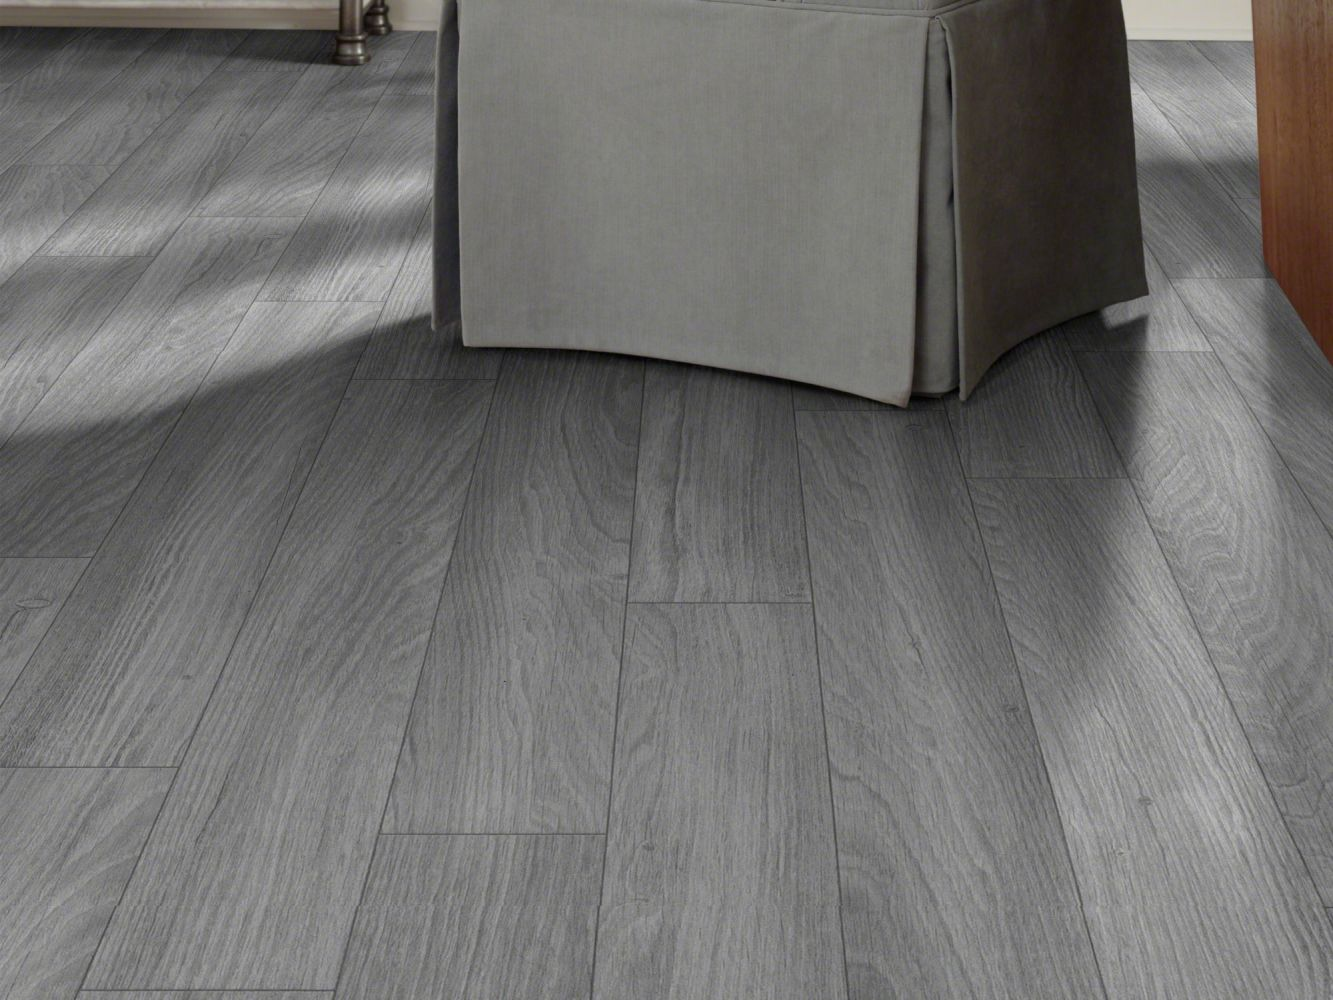 Shaw Floors Vinyl Property Solutions Highlands II Shadow Grey 00557_VG076